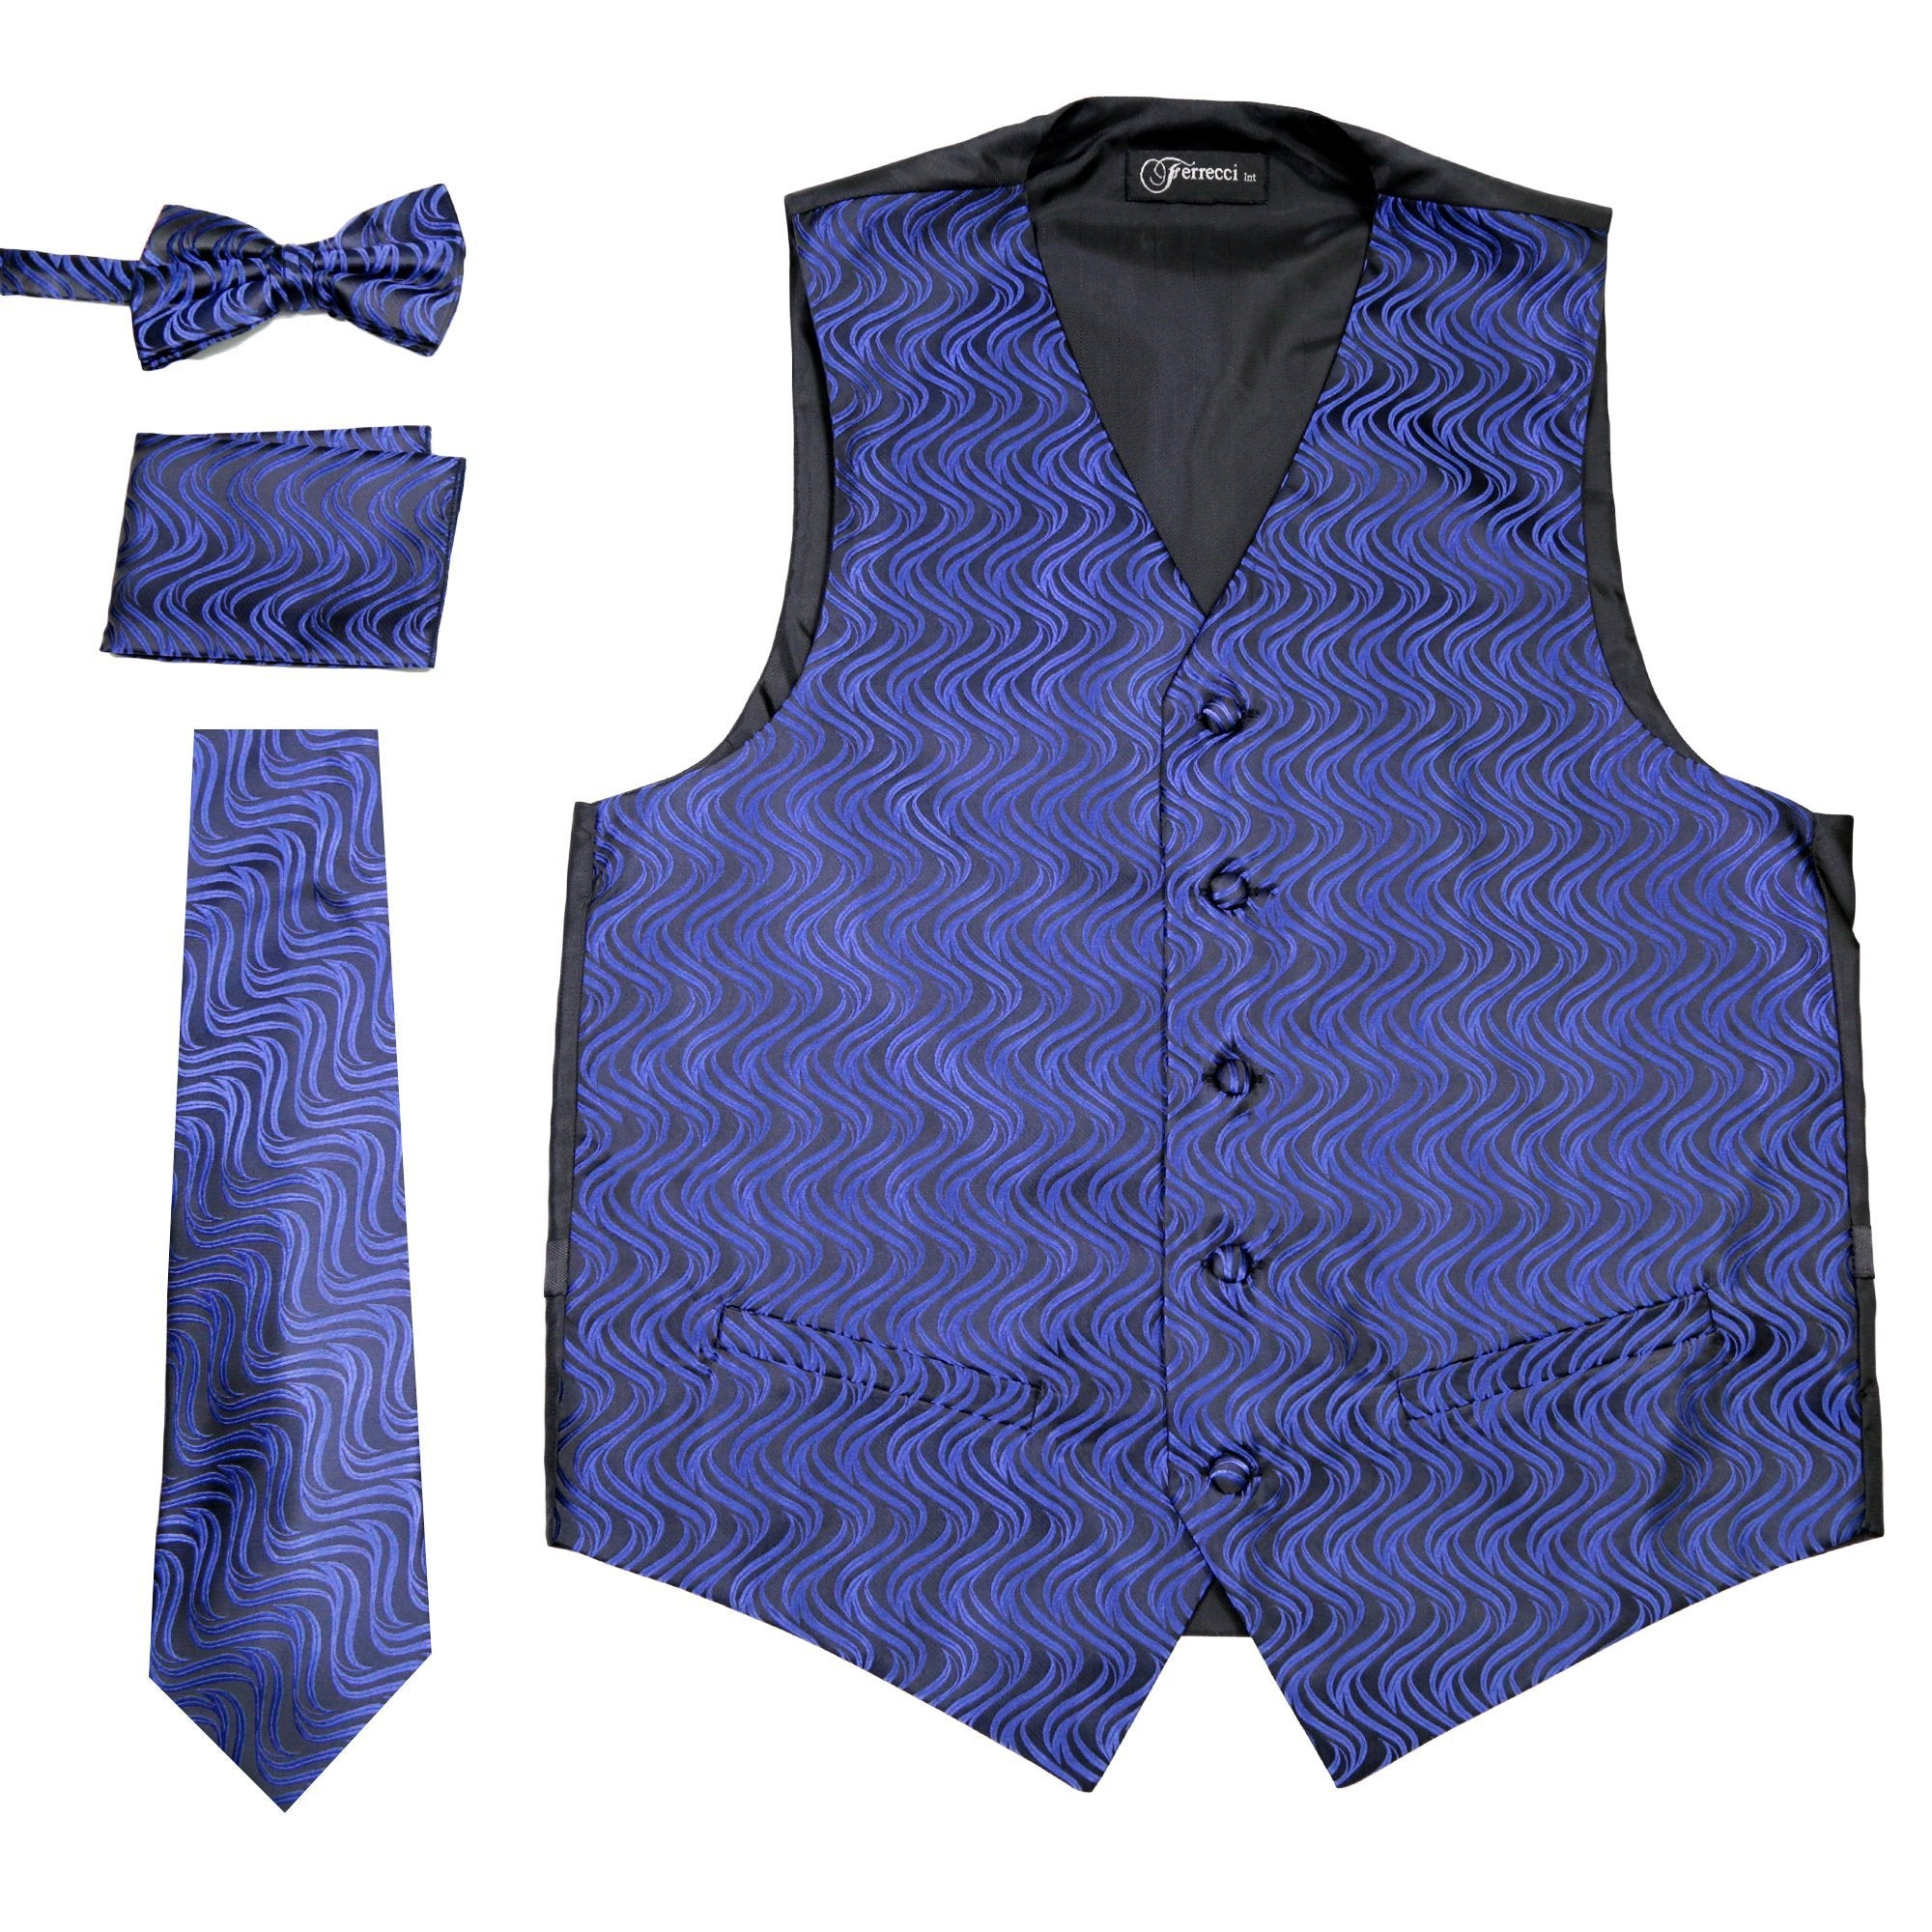 Ferrecci Mens PV150 - Black/Blue Vest Set - Giorgio's Menswear